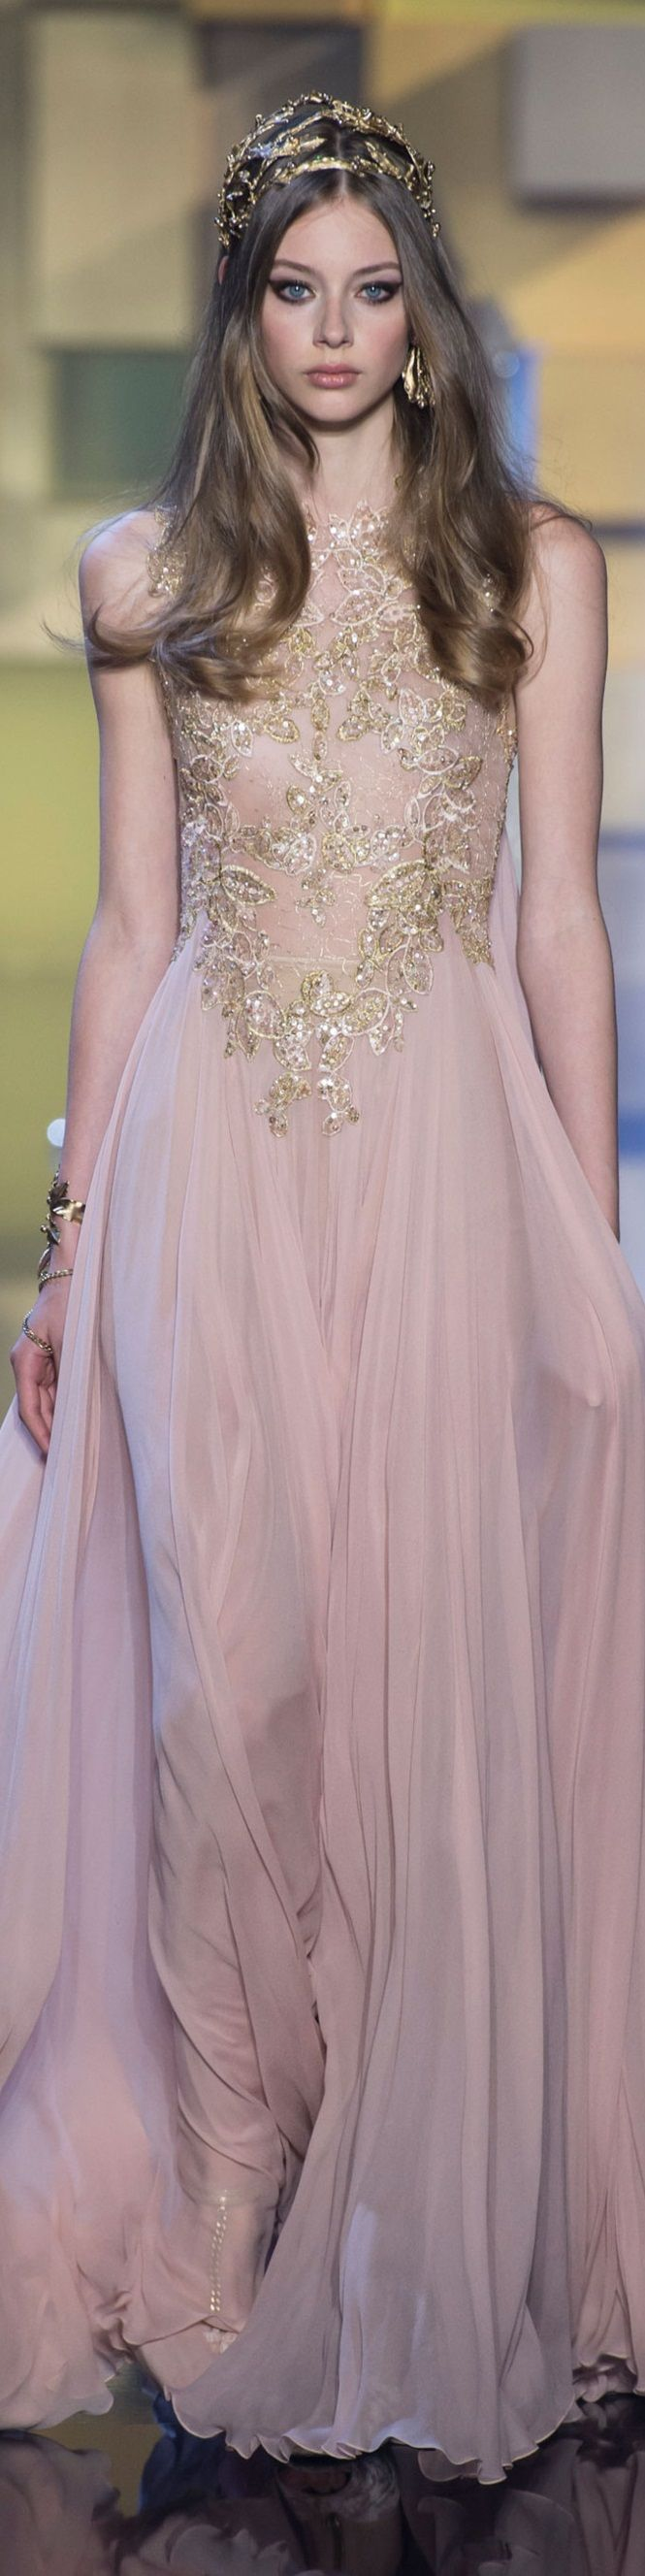 Gowns-Belle of the Ball! *Elie saab FW 2015 couture